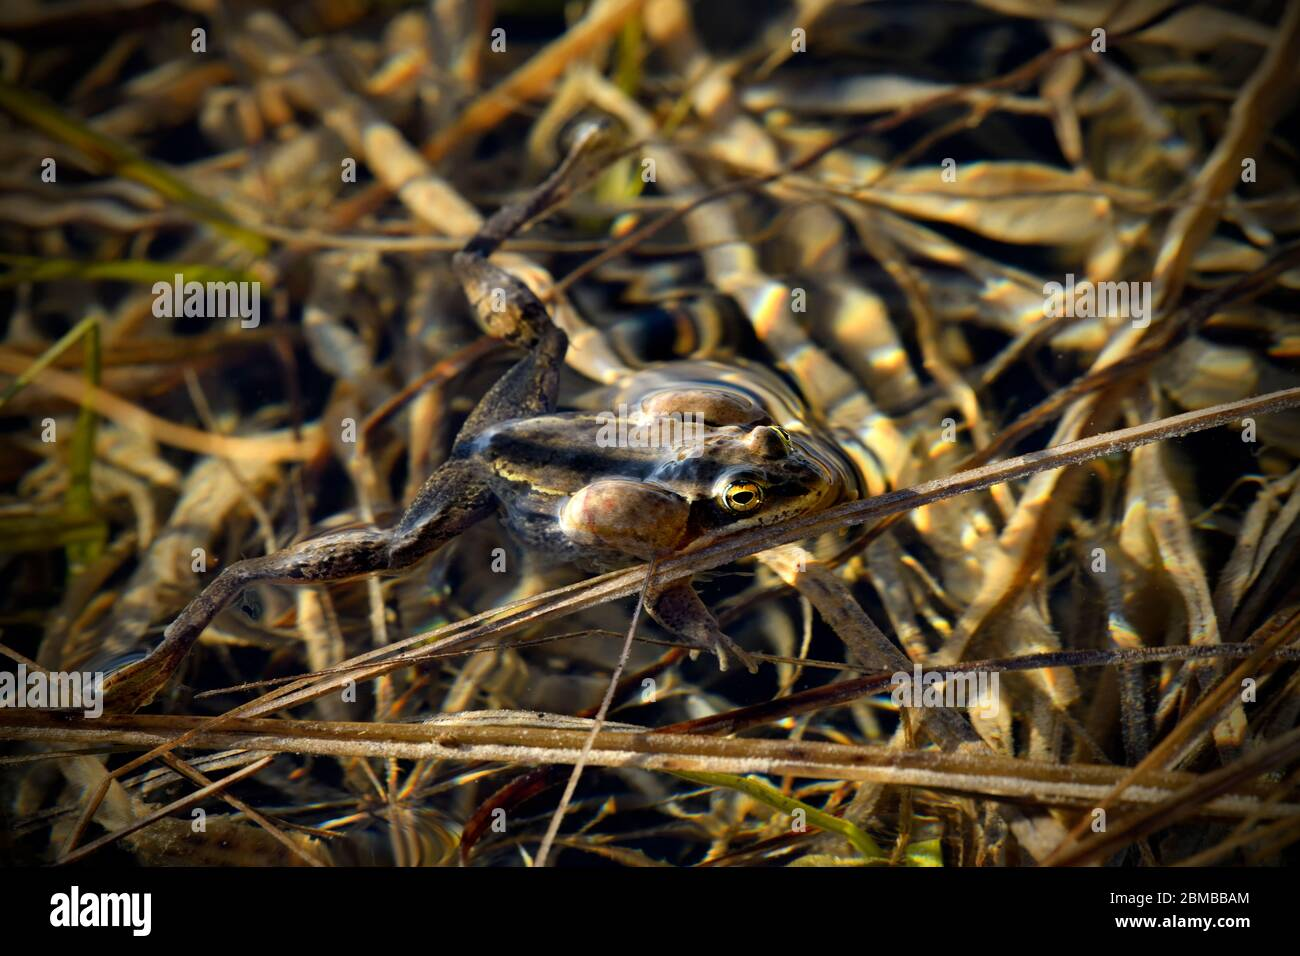 """A wood frog """"Rana sylvatica""""; floating in  shallow water in his watery habitat during the spring mating season being vocal to attract a mate in rural Stock Photo"""